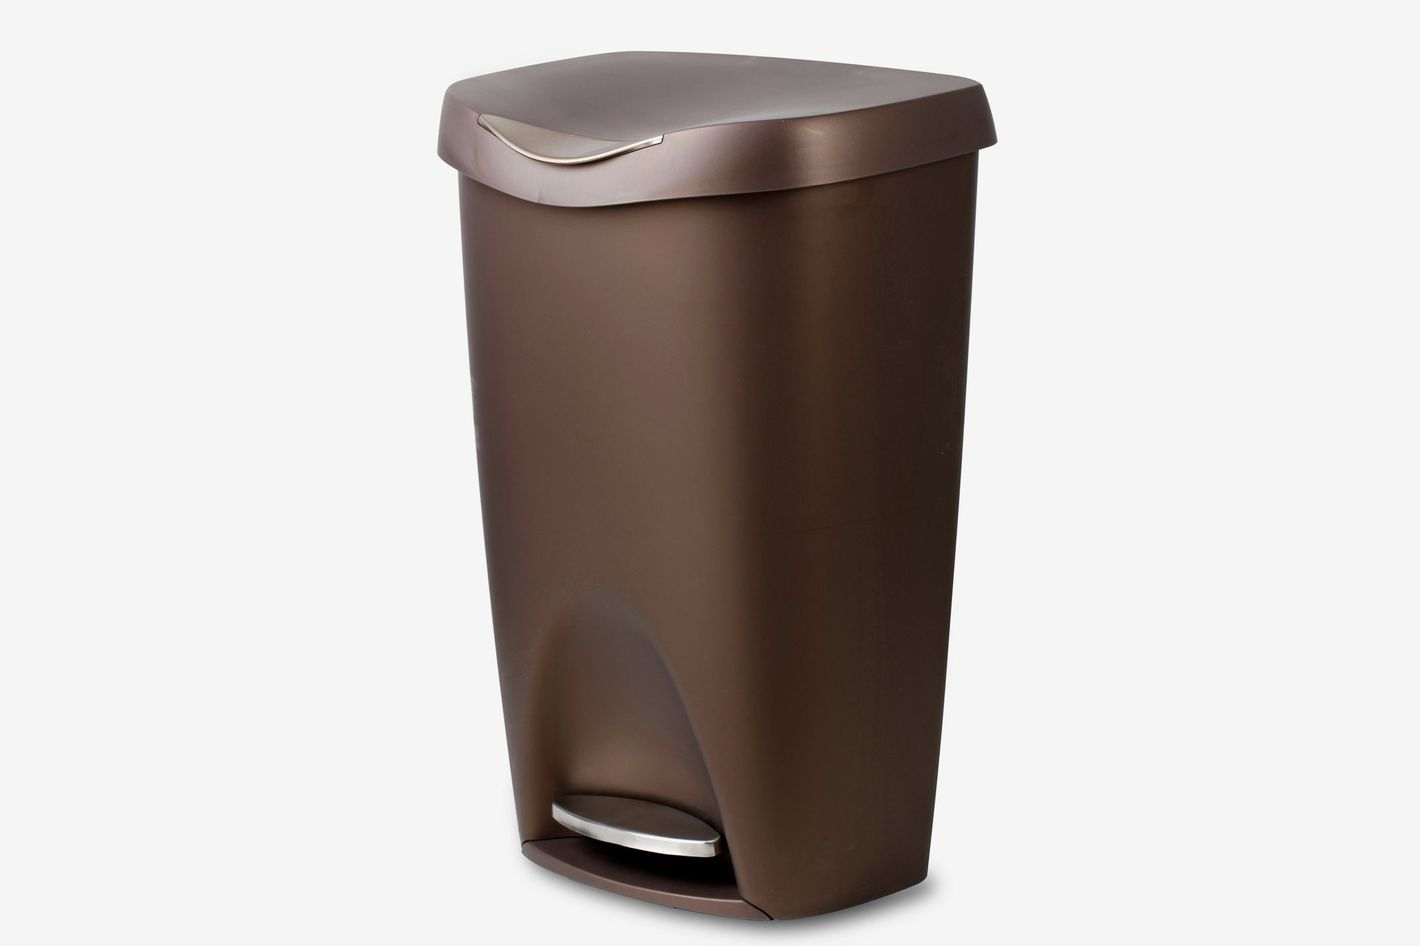 umbra brim large kitchen trash can with stainless steel foot pedal - Stainless Steel Kitchen Trash Can